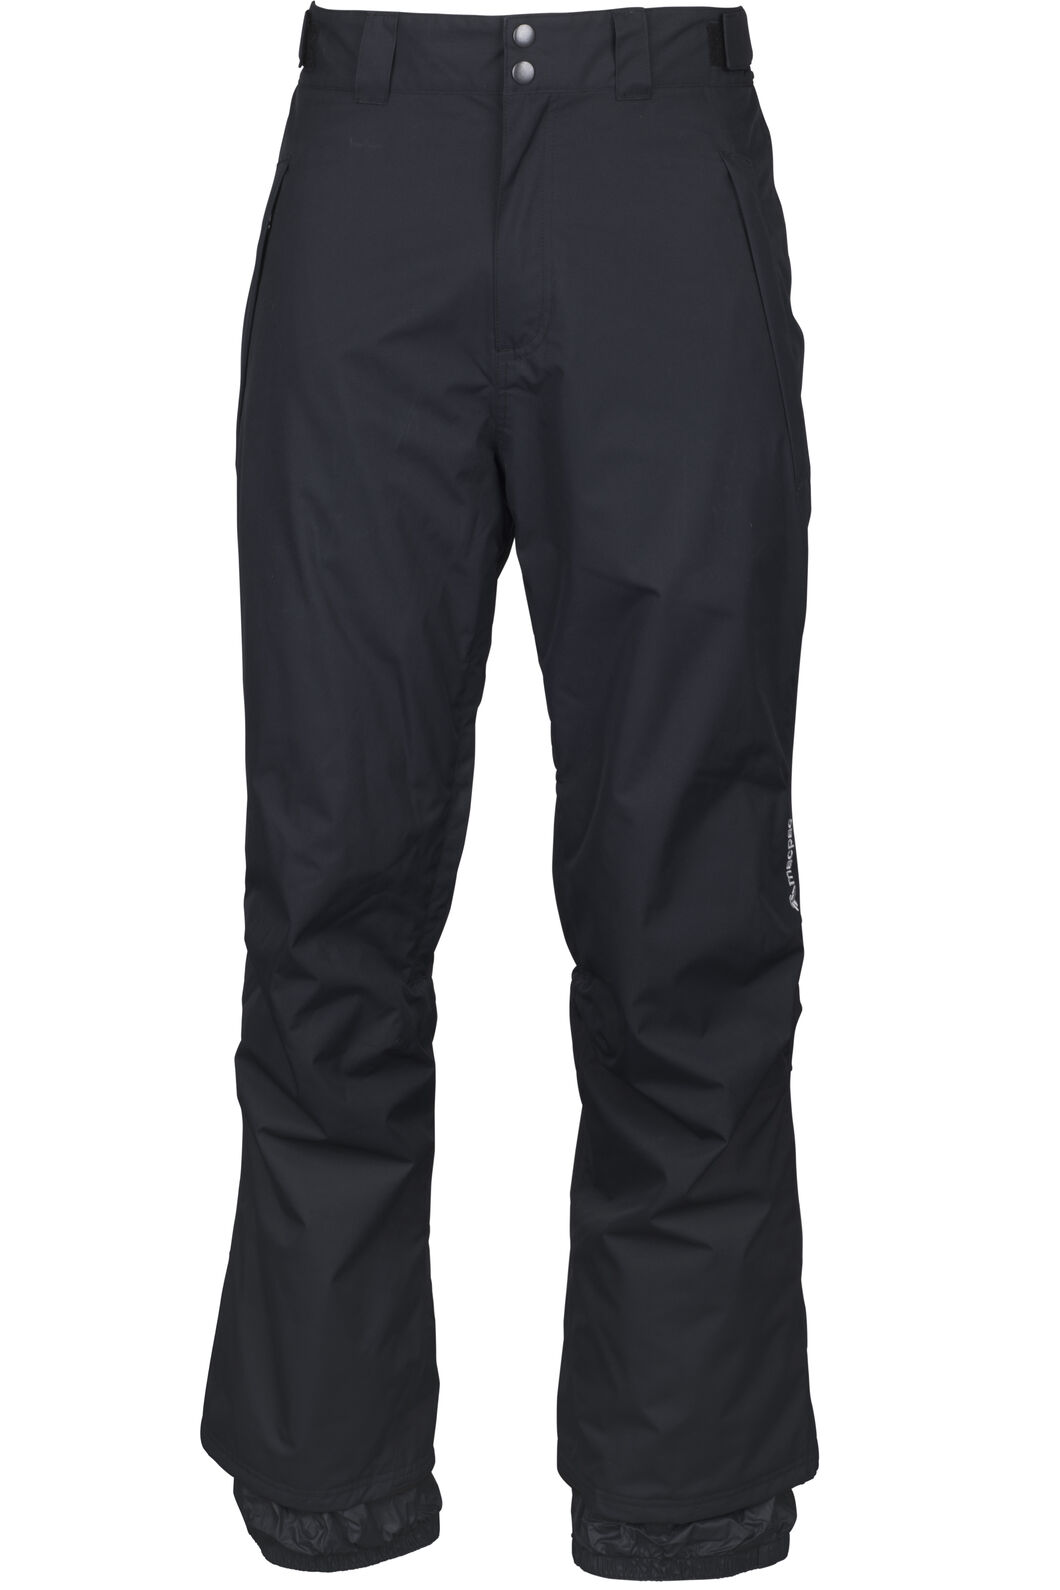 Macpac Powder Ski Pants - Men's, Black, hi-res